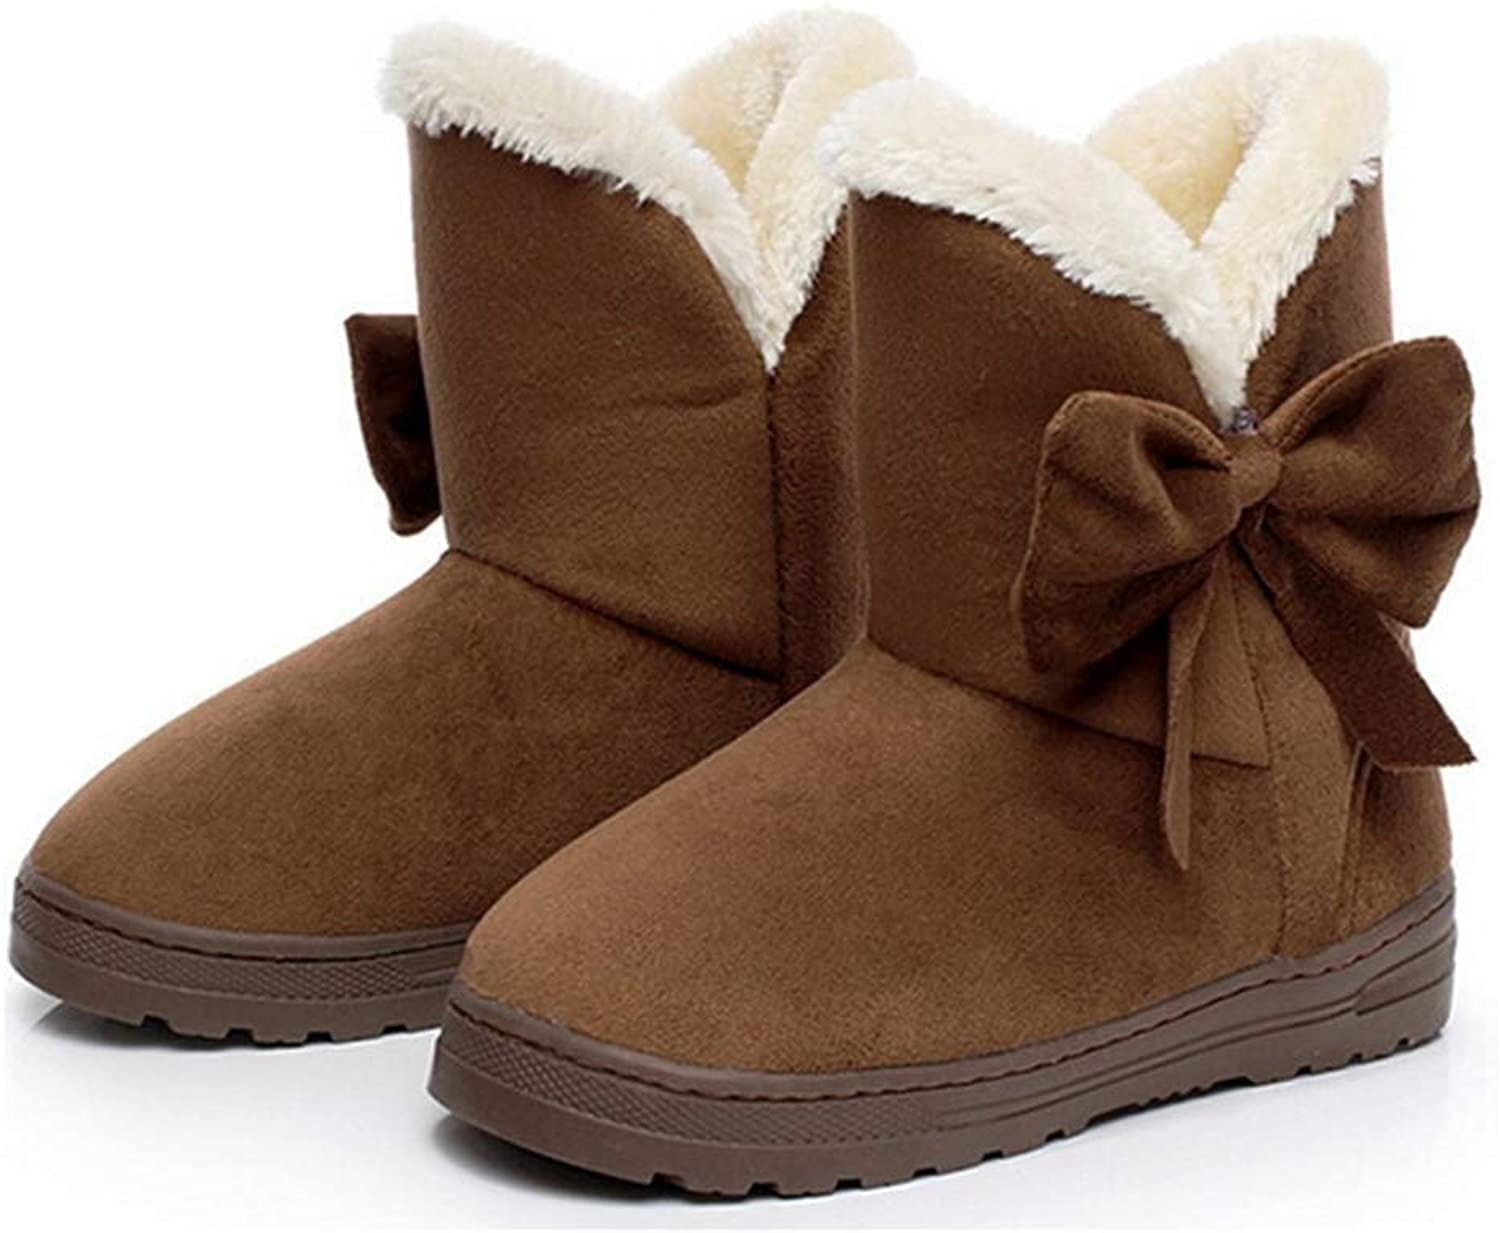 Wallhewb Snow Boots Winter Ankle Boots for Women Warmer Plush Bowtie Fur Suede Rubber Flat Slip On Fashion Platform Ladies shoes Non-Slip On Sale Untiskid Rubber Sole Coffee 5 M US Ankle Boots